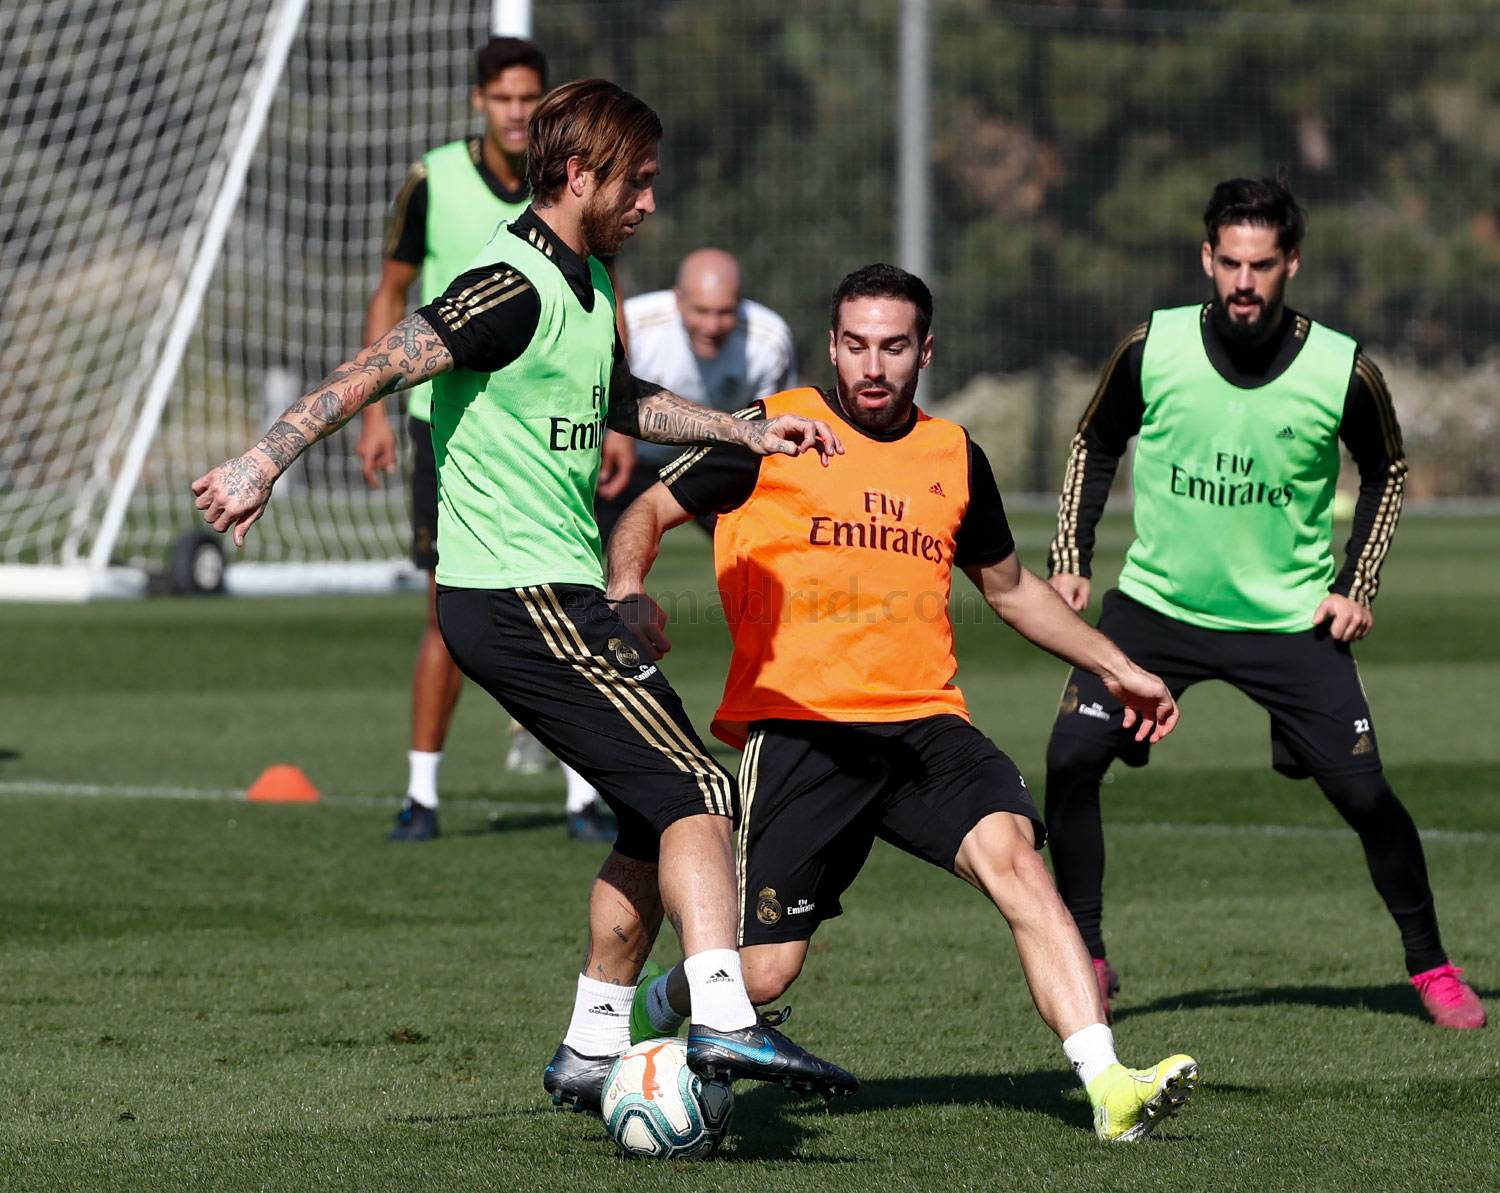 Real Madrid - Entrenamiento del Real Madrid  - 28-10-2019